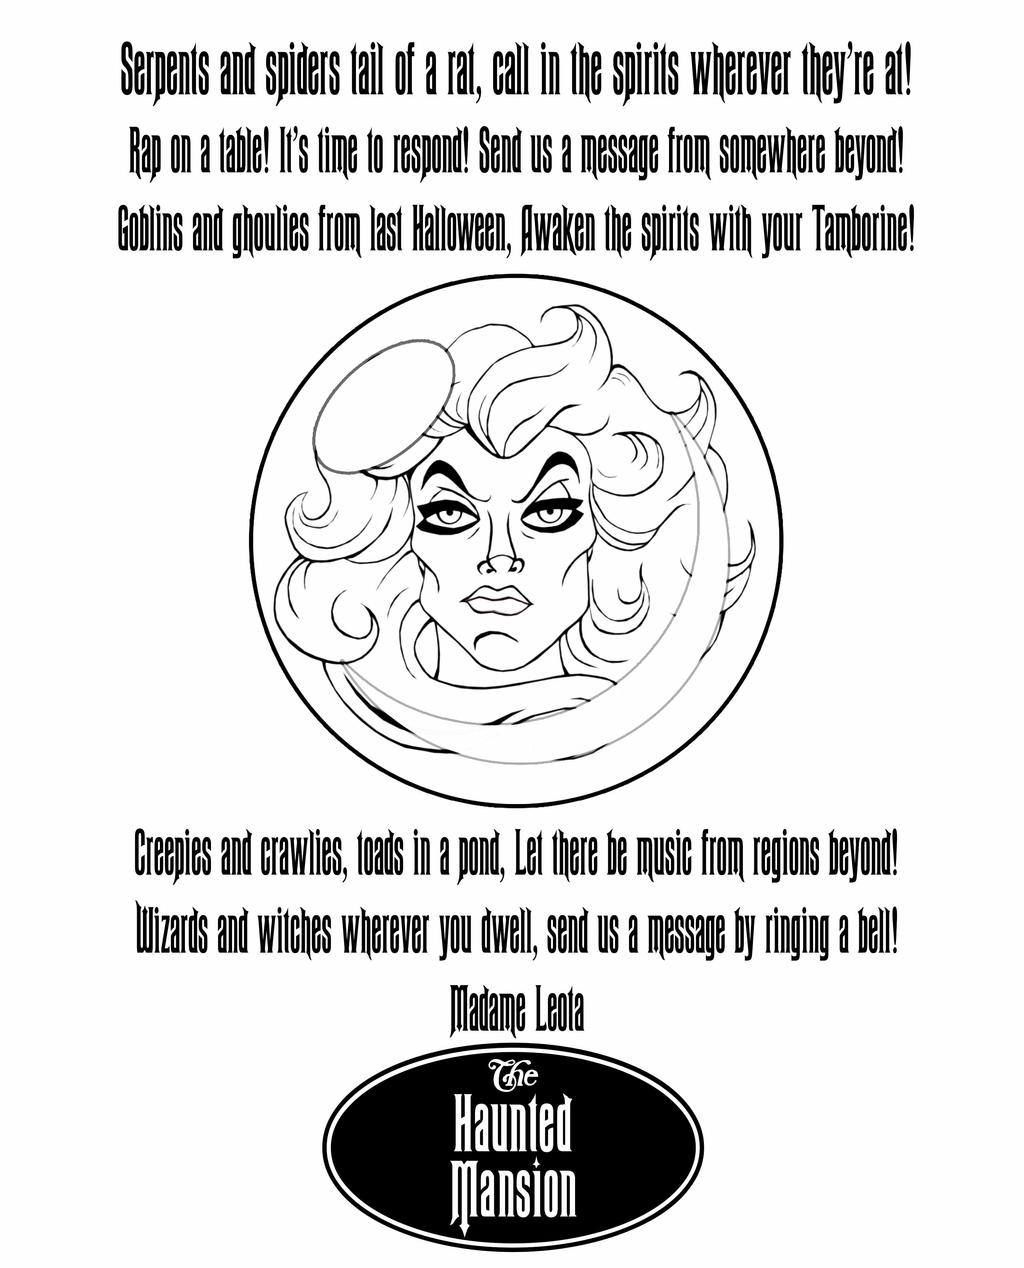 madame leota coloring page by disneyfreak19 on deviantart